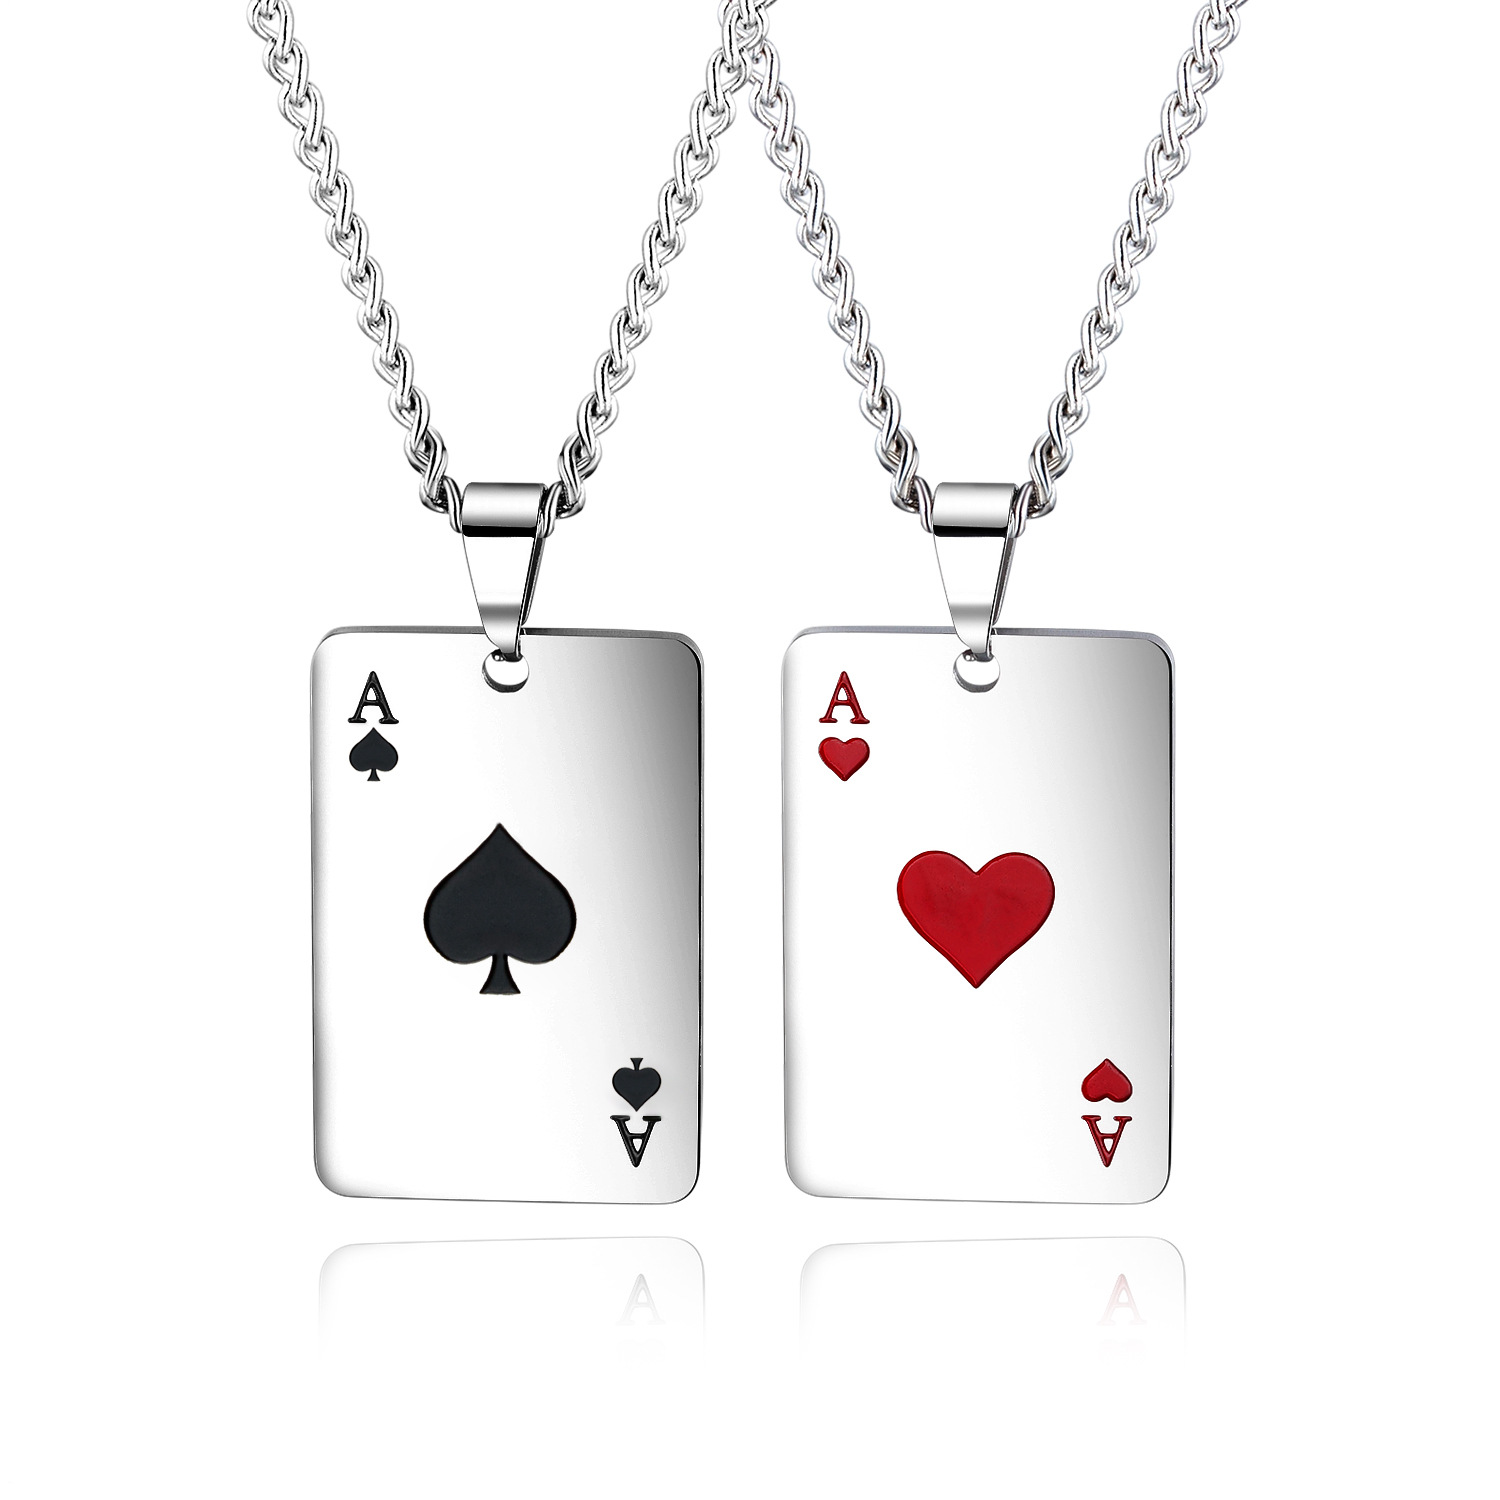 Cyue New Arrival Stainless Seel Black Spades Lucky Poker Charm Necklace For Women Men Jewelry GX1542H